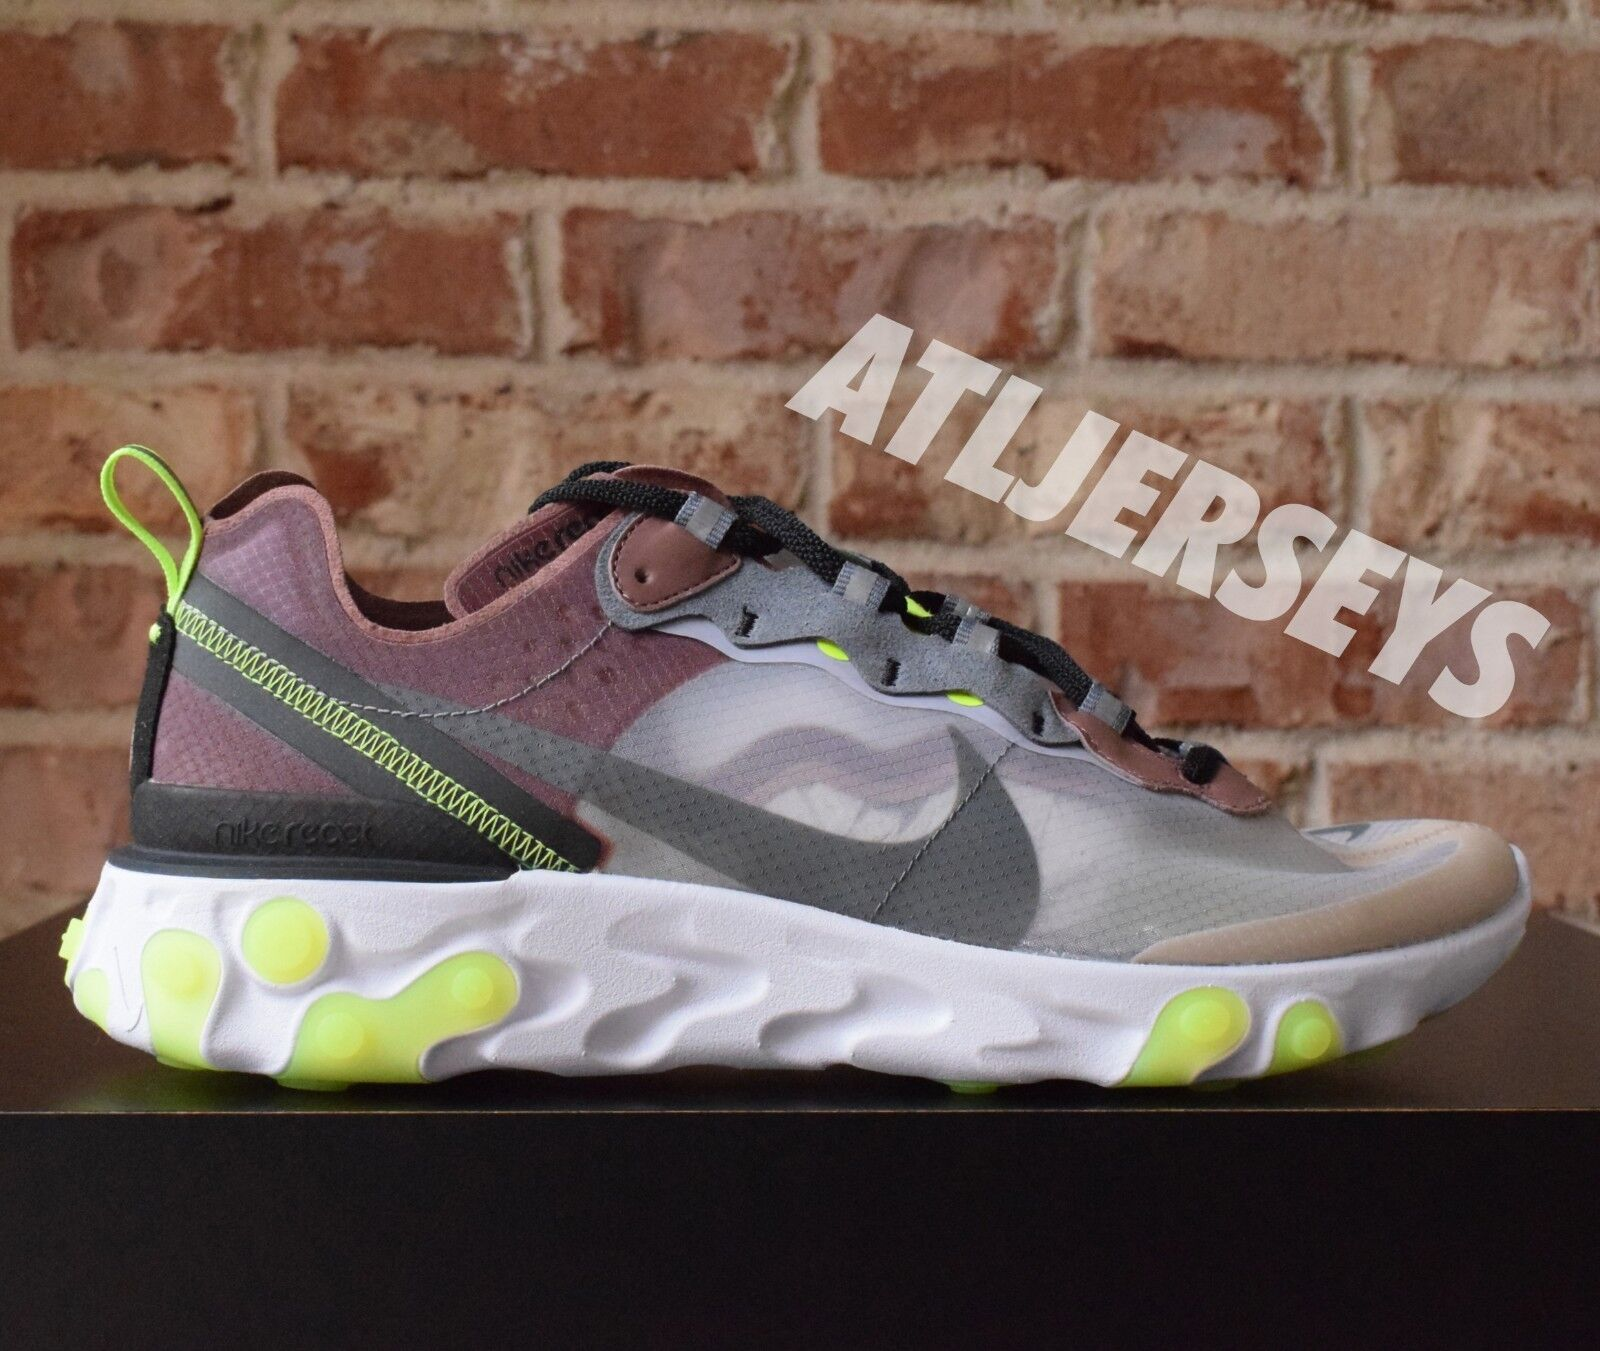 Nike React Element 87 Desert Sand Cool Grey Volt AQ1090-002 Comfortable The latest discount shoes for men and women